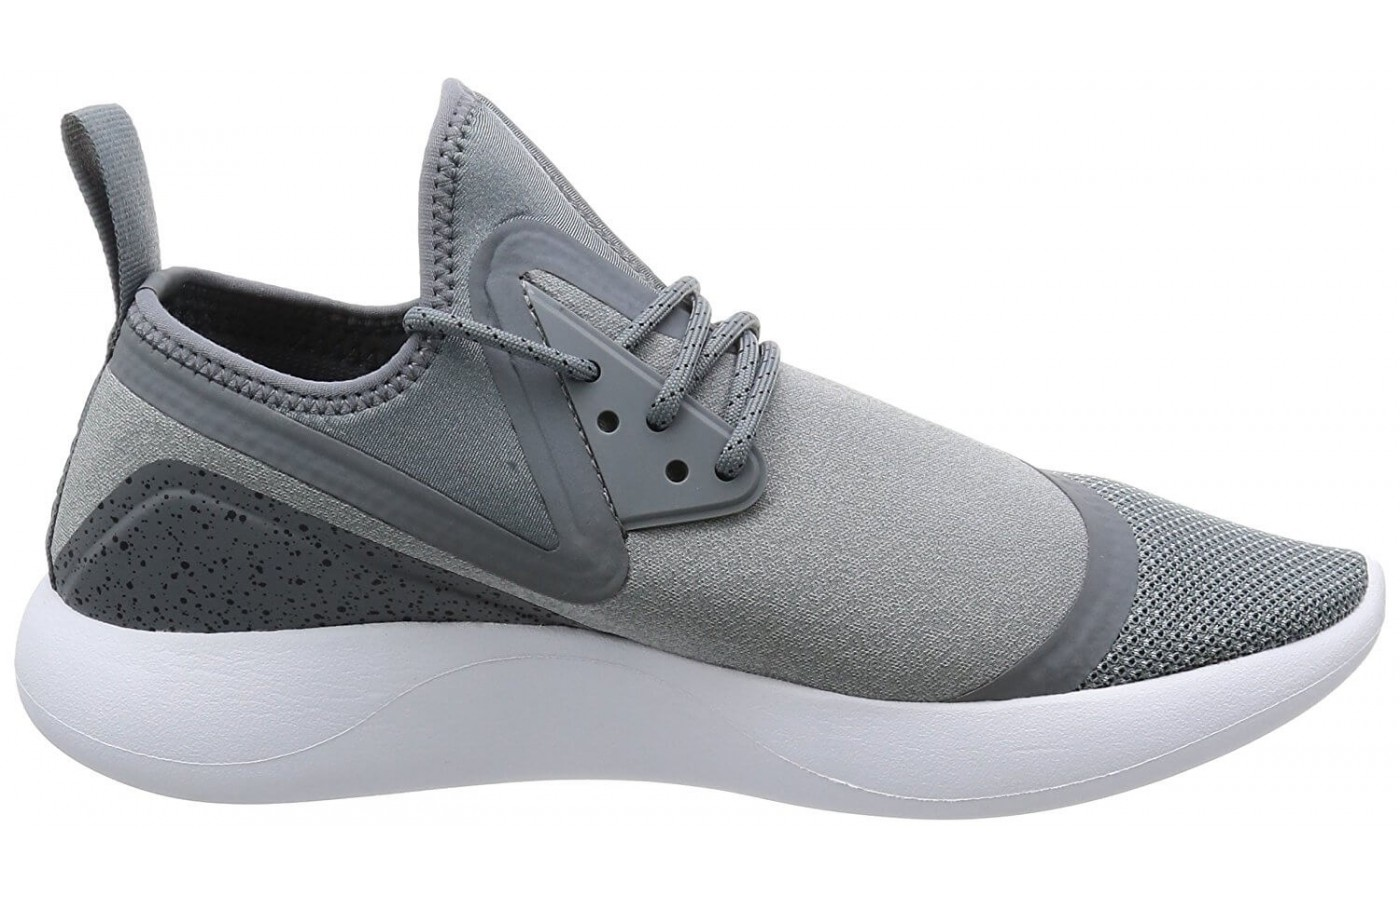 The midsole of the Nike LunarCharge Essential is made from the traditional EVA foam padding.